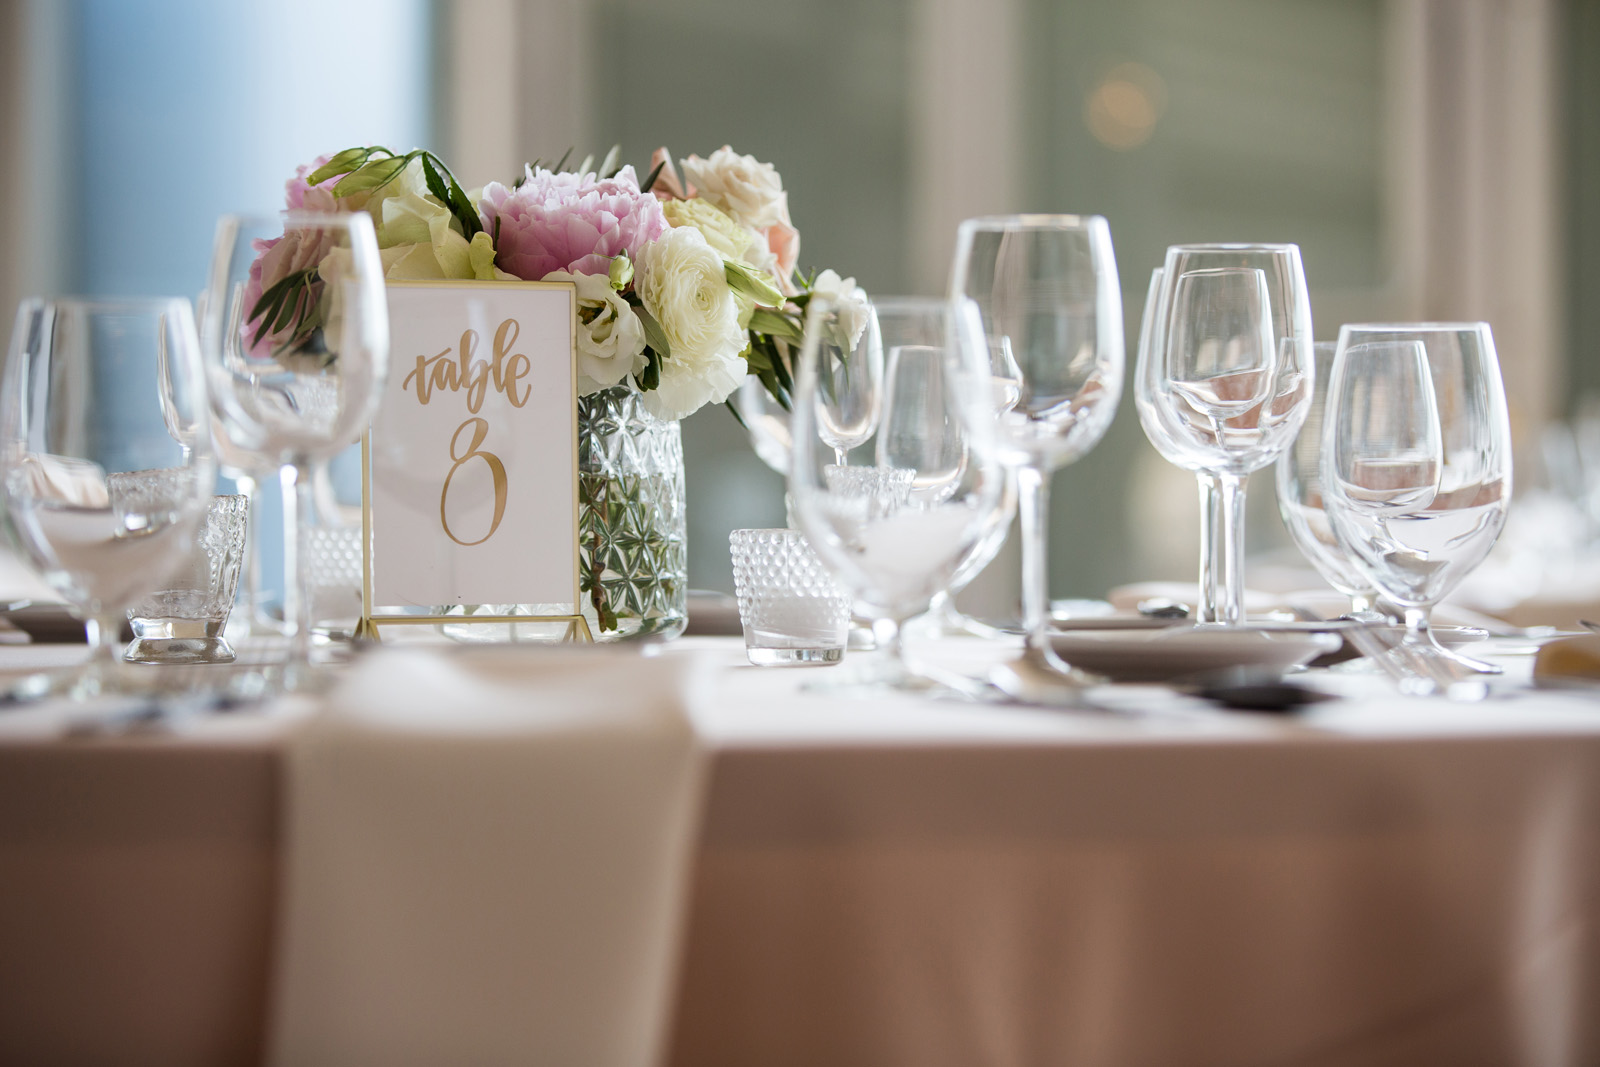 Table decor inspiration in blush, white, green